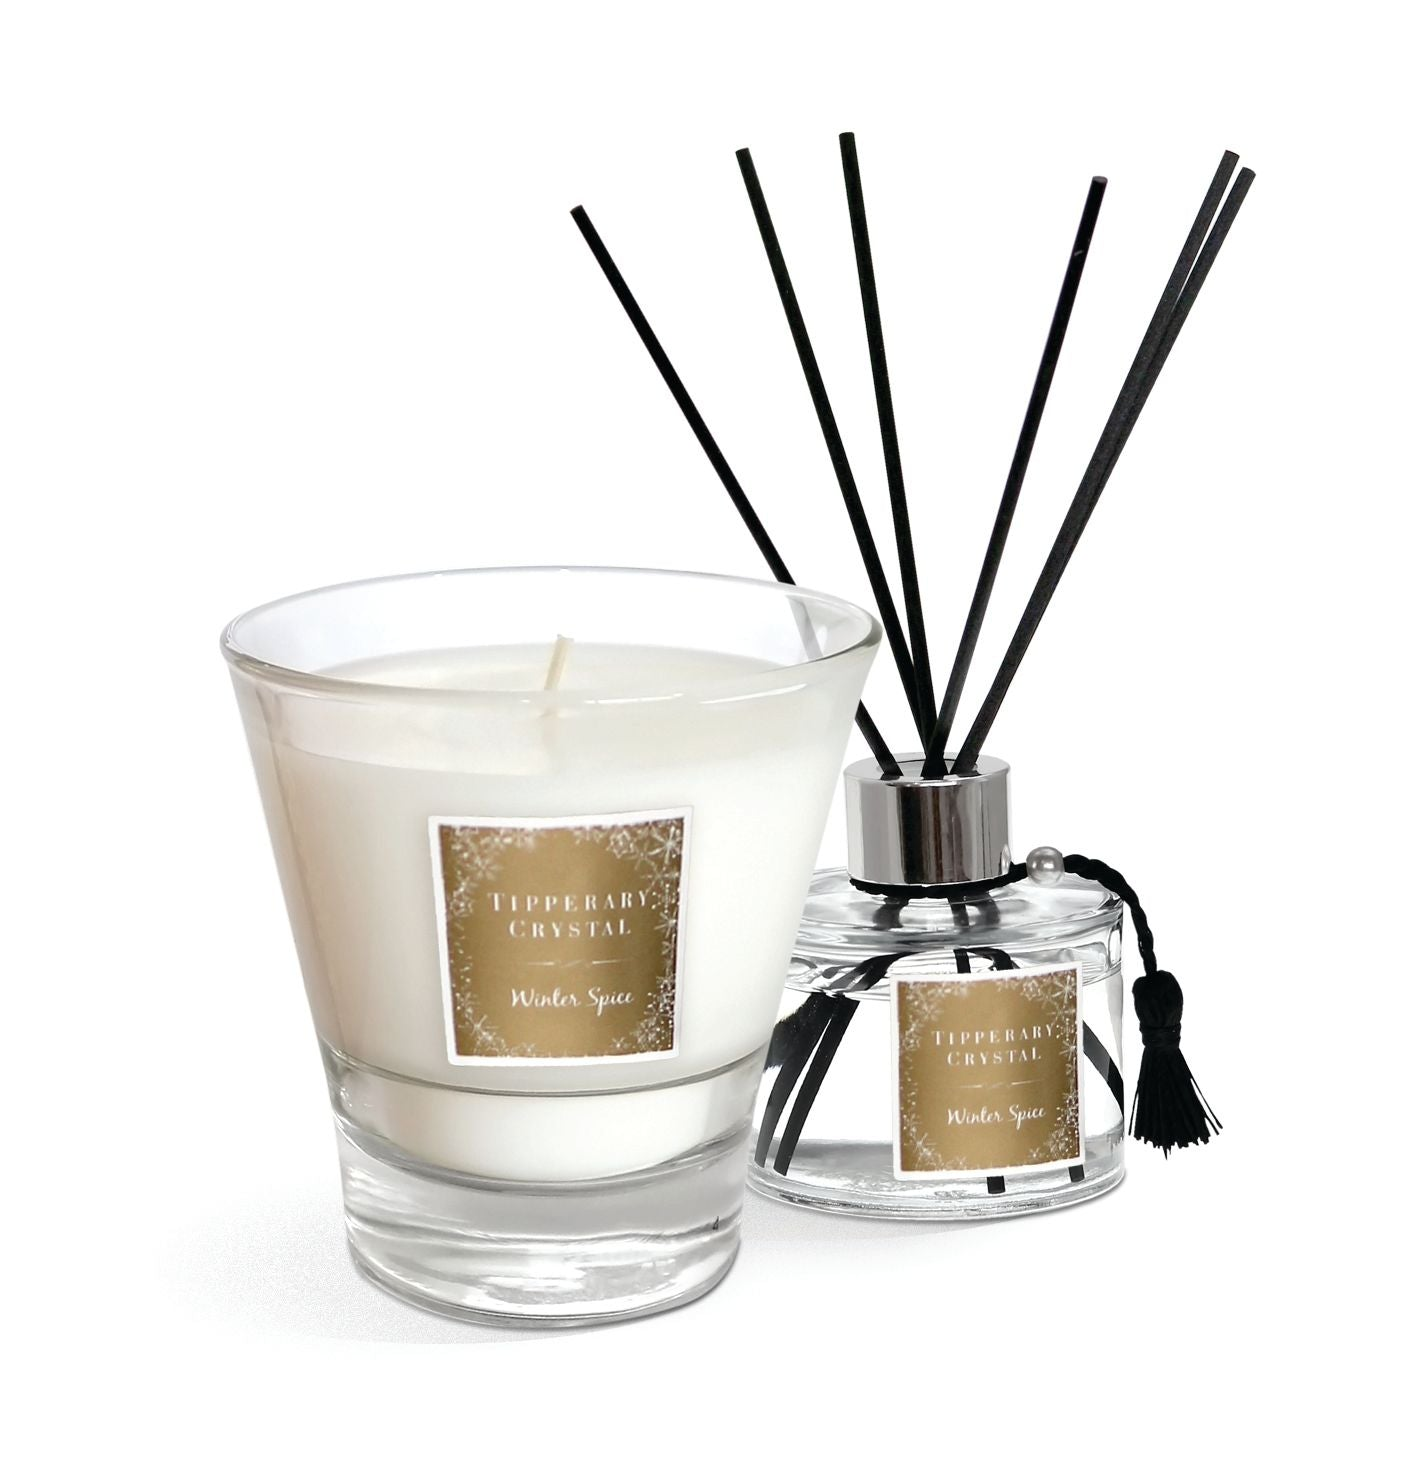 Tipperary Crystal Candle and Diffuser Set Winter Spice